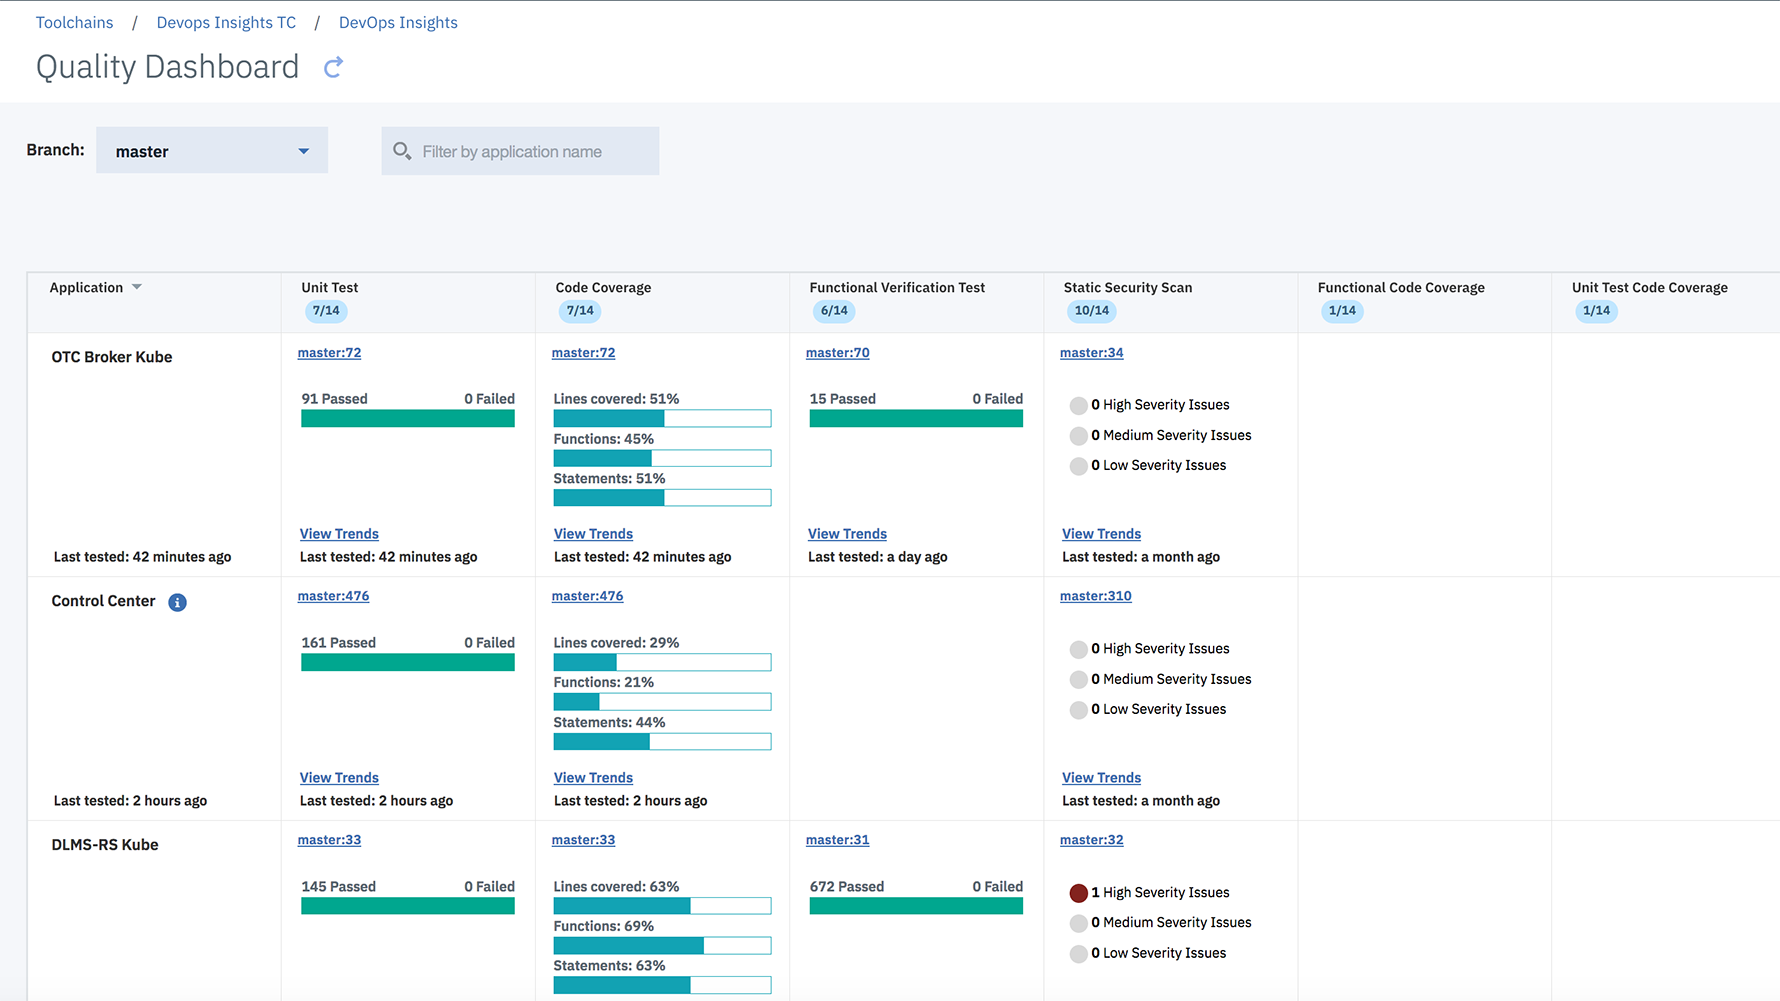 Screen shot from DevOps Insights tool showing feedback